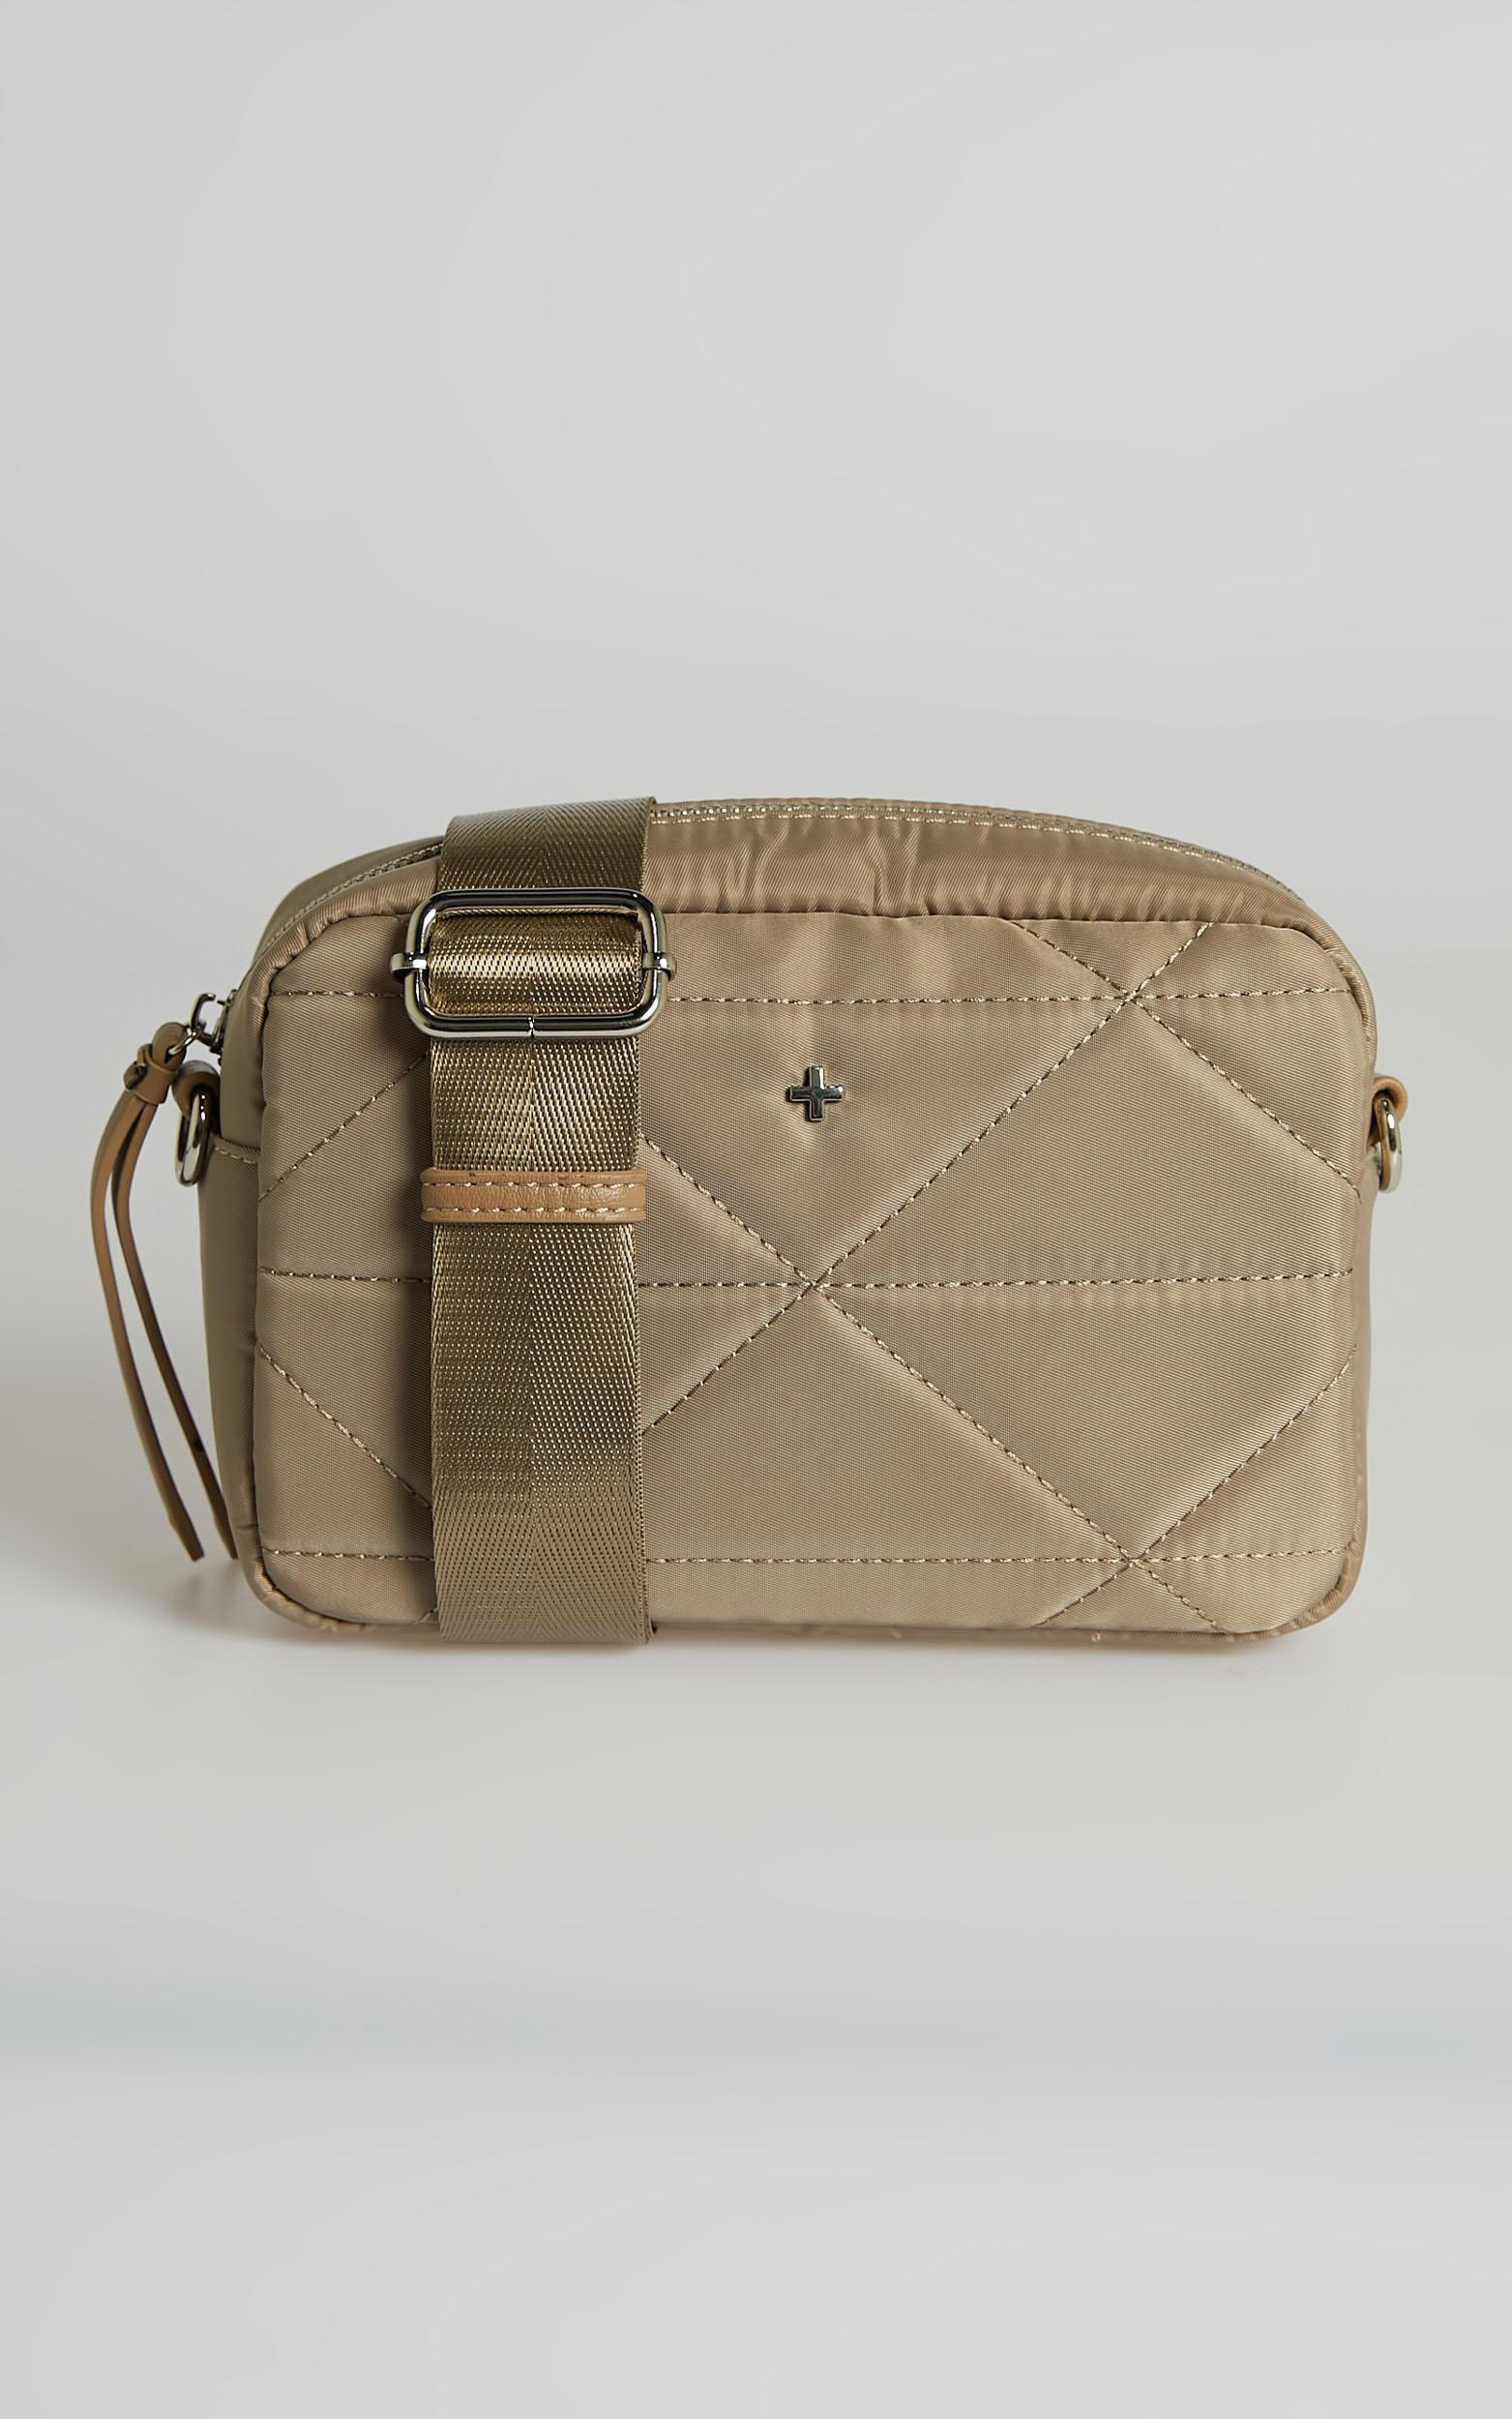 Peta and Jain - Pronto Bag in Cappuccino Nylon, Beige, hi-res image number null